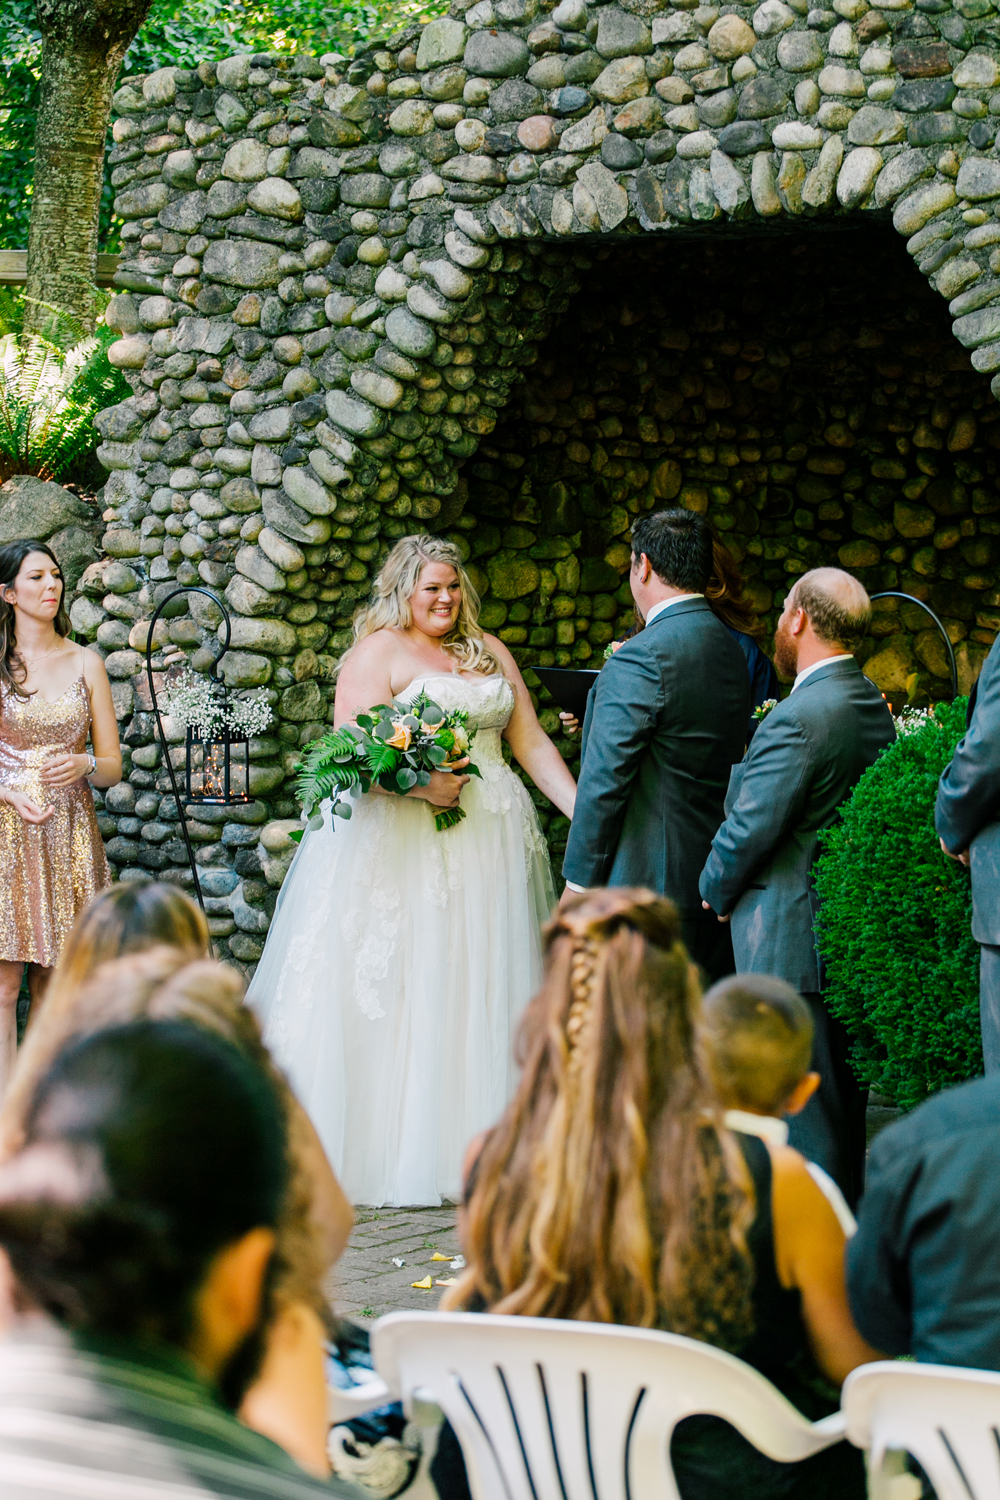 057-seattle-bastyr-grotto-wedding-katheryn-moran-photography-ashley-zach.jpg